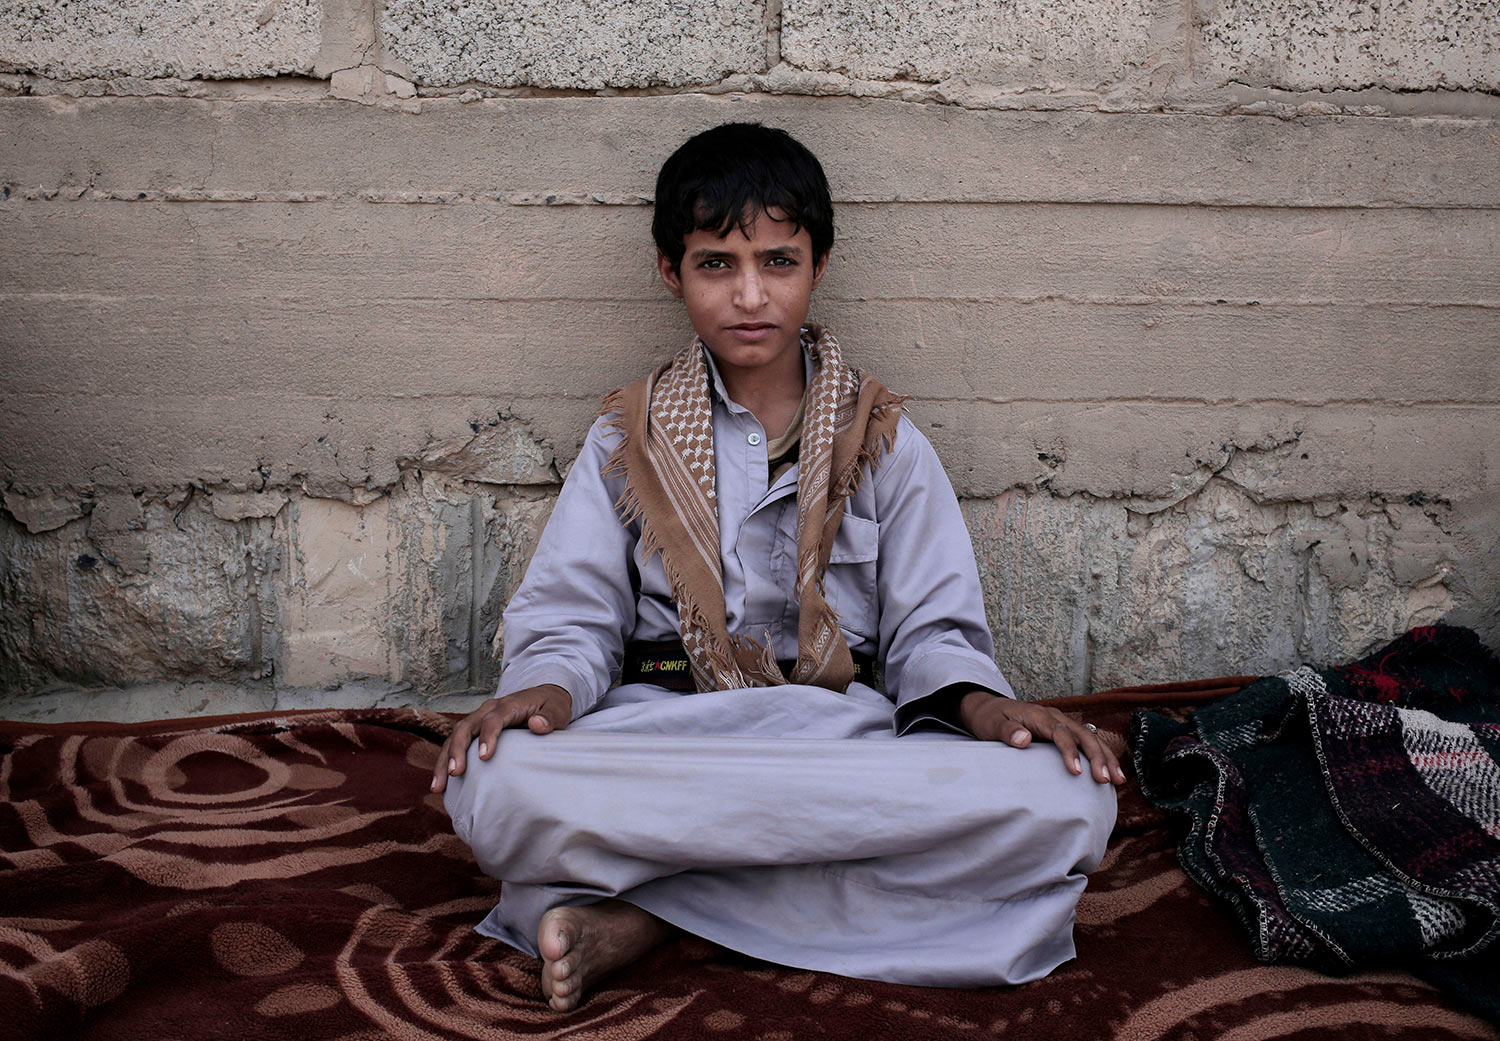 In this July 27, 2018 photo, 14 year-old Abdel Hamid Saleh, poses for a photograph at a camp for displaced persons where he took shelter, in Marib, Yemen. (AP Photo/Nariman El-Mofty)